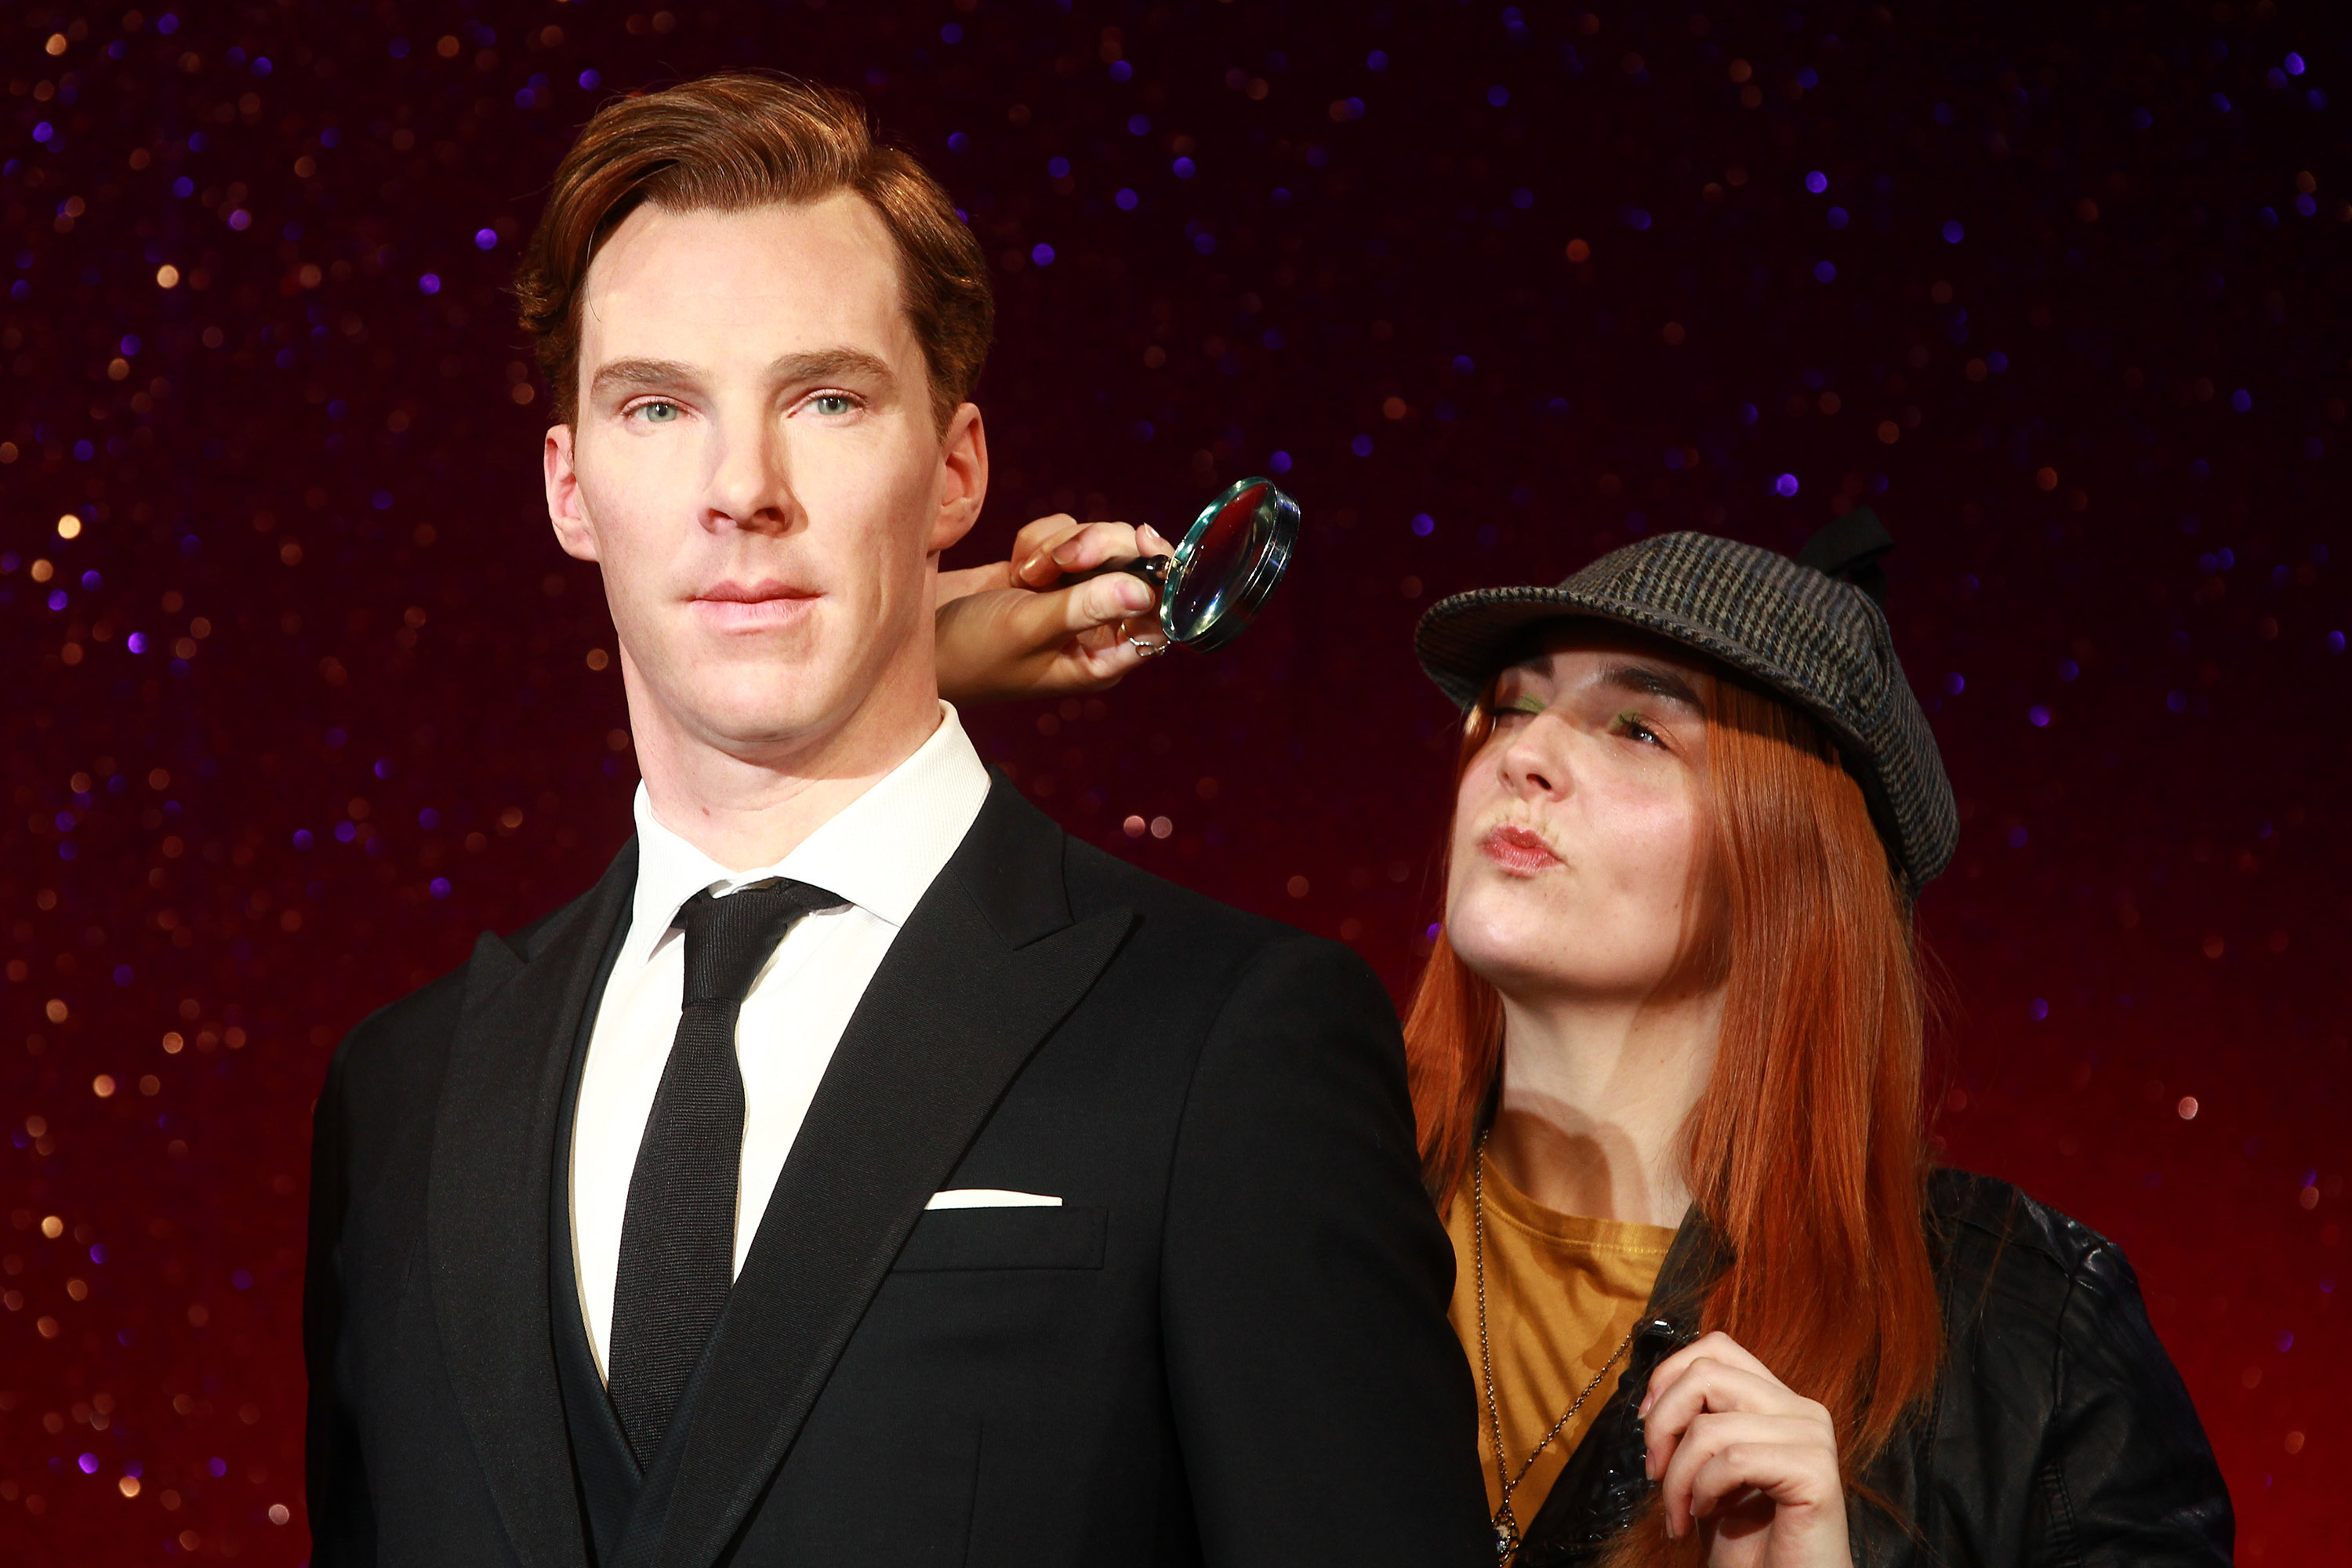 The unveiling of the new wax figure of Benedict Cumberbatch at Madame Tussauds